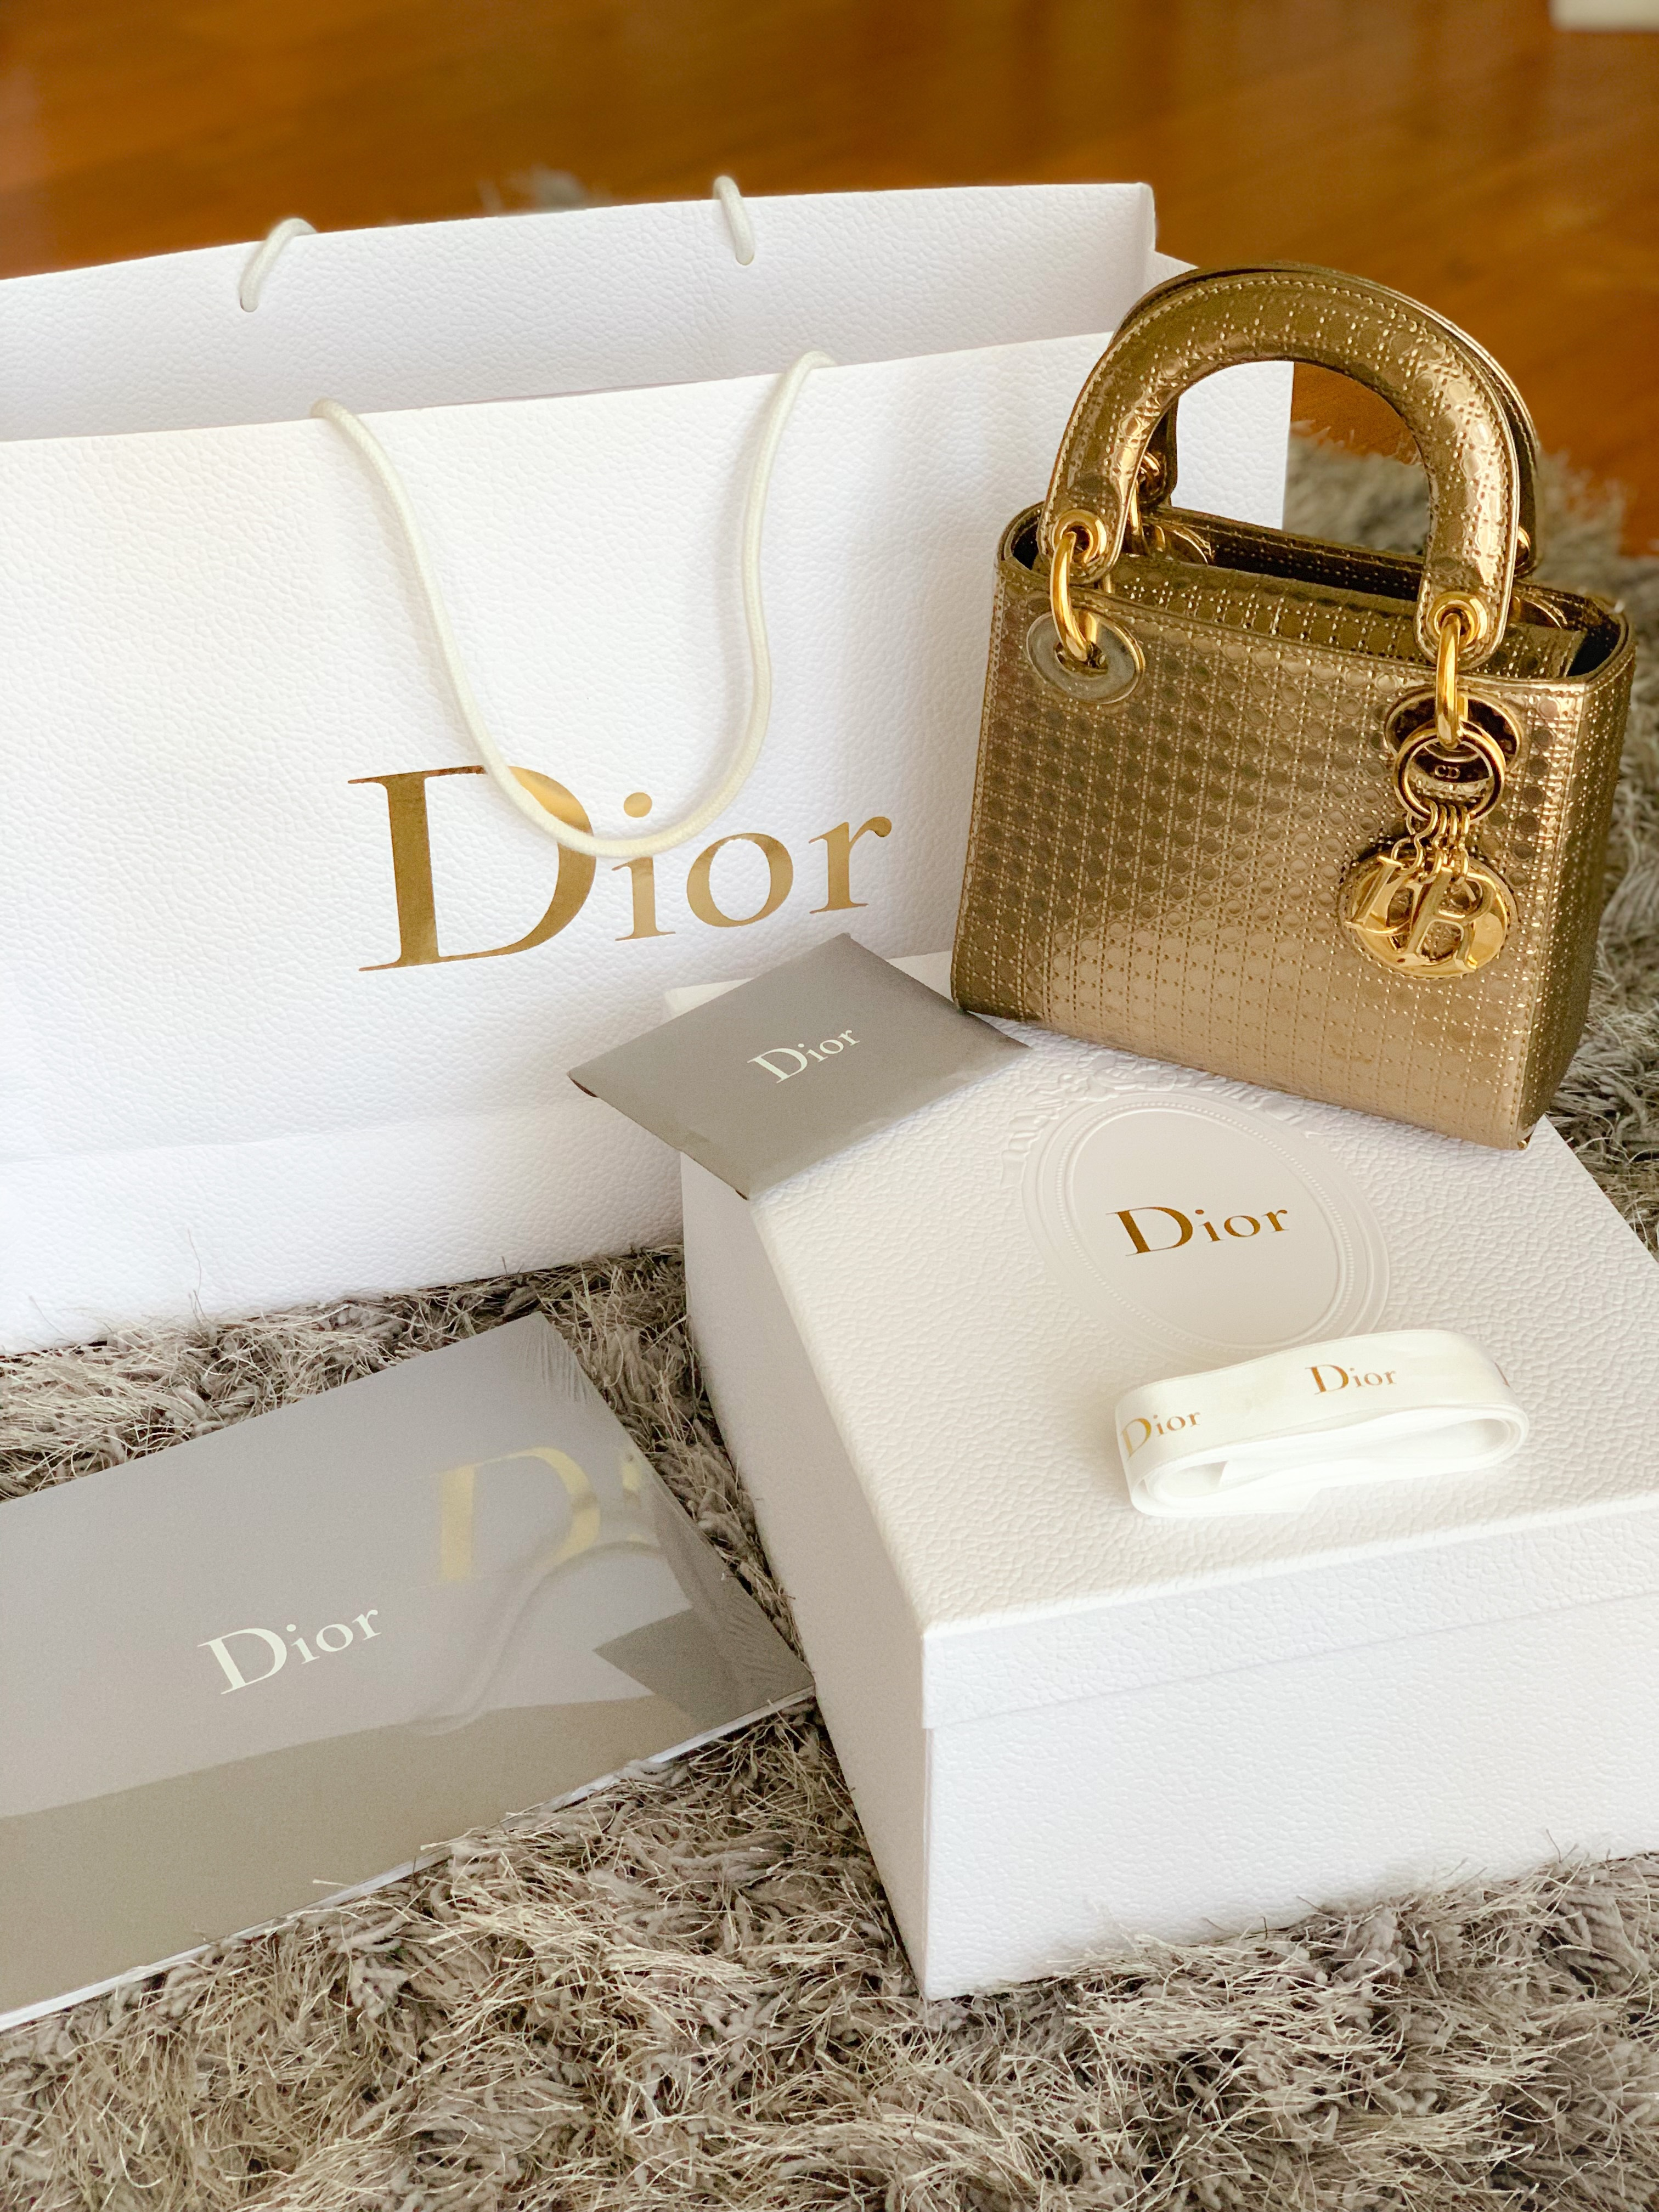 78860eafe03e Dior Gold Micro Cannage Patent Leather Mini This structured bag features  micro cannage pattern in gold patent leather. It features gold-tone DIOR  letter ...